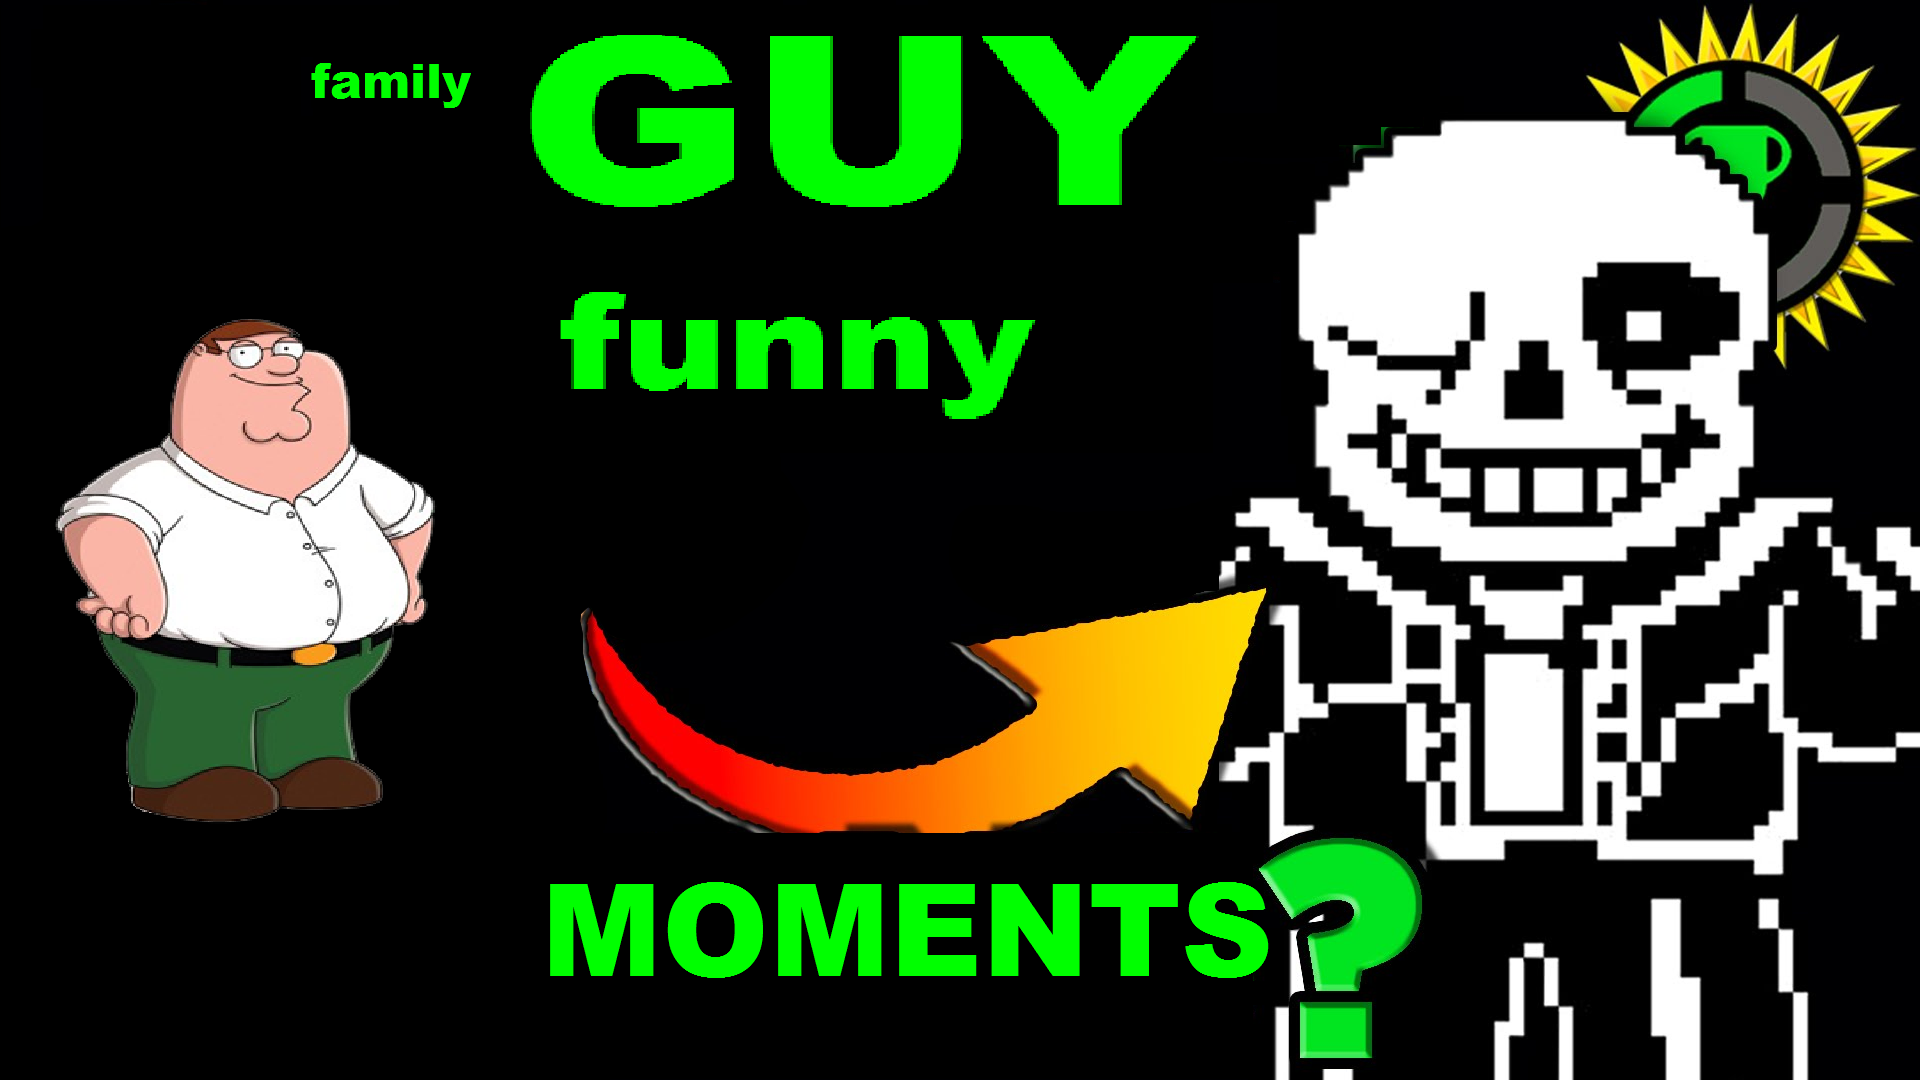 Funny Moment Meme : Game theory funny moments family guy